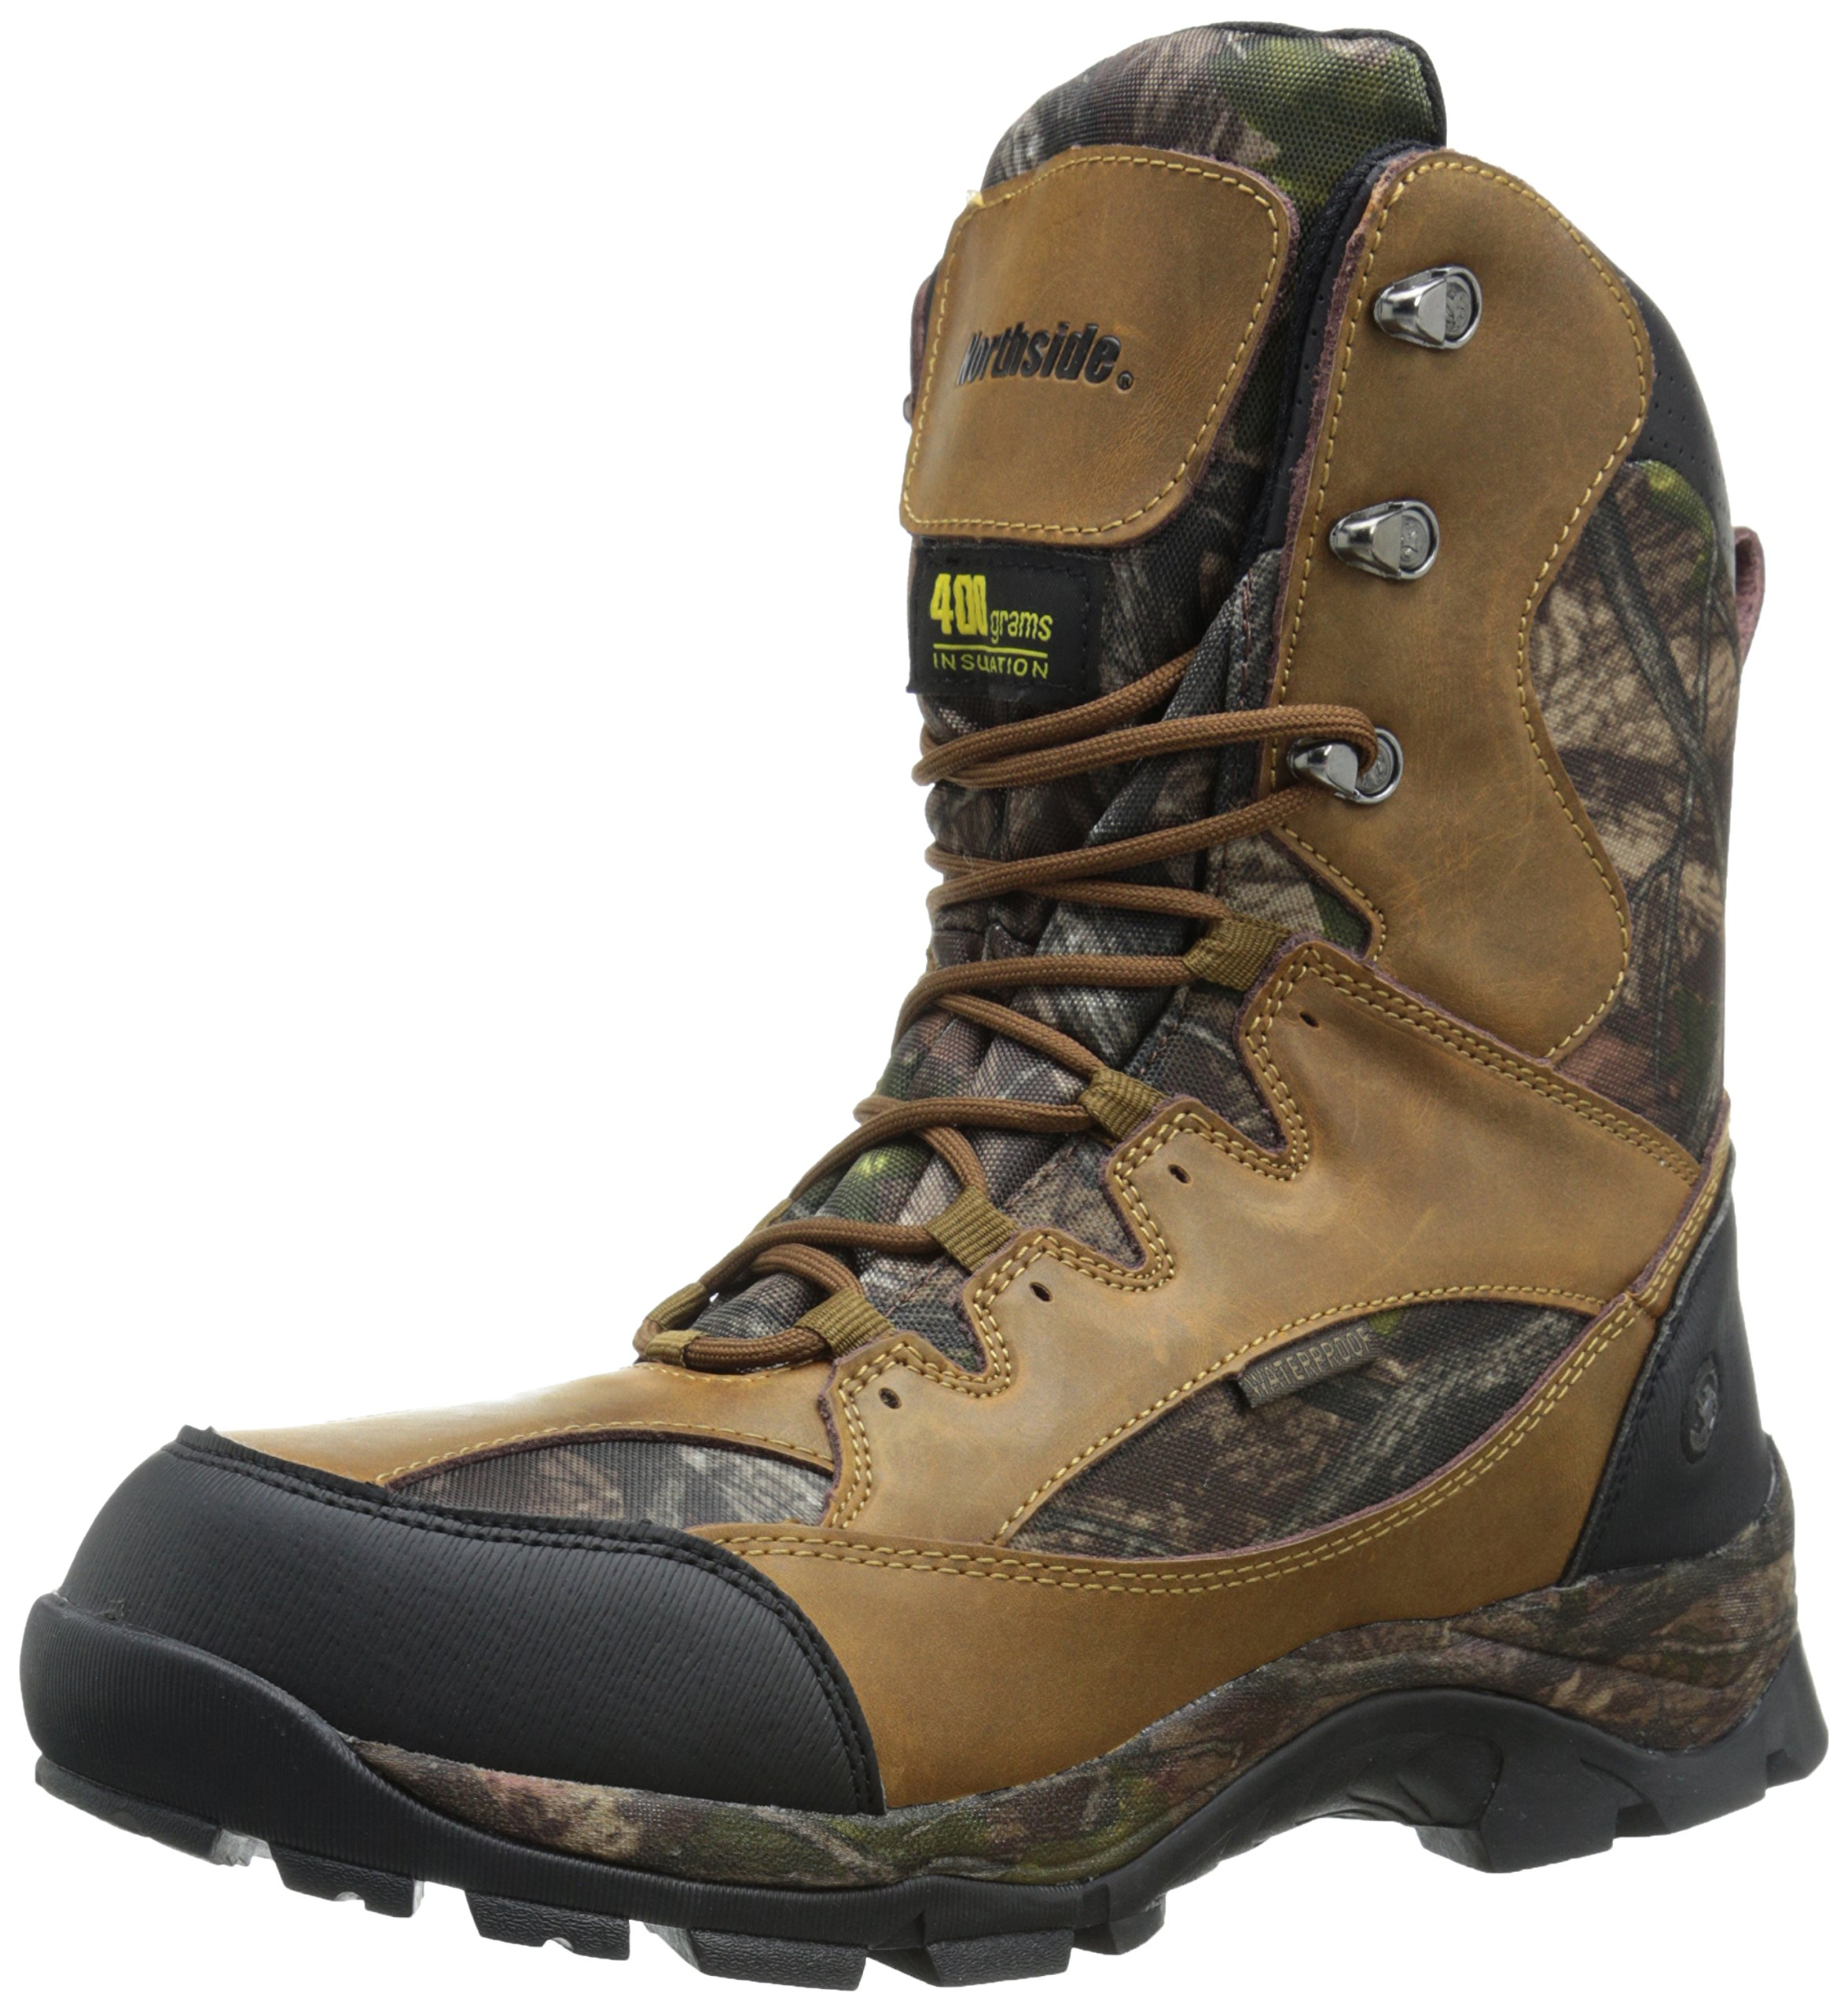 Northside Men's Renegade 400 Hunting Boot, Tan Camo, 8.5 M US